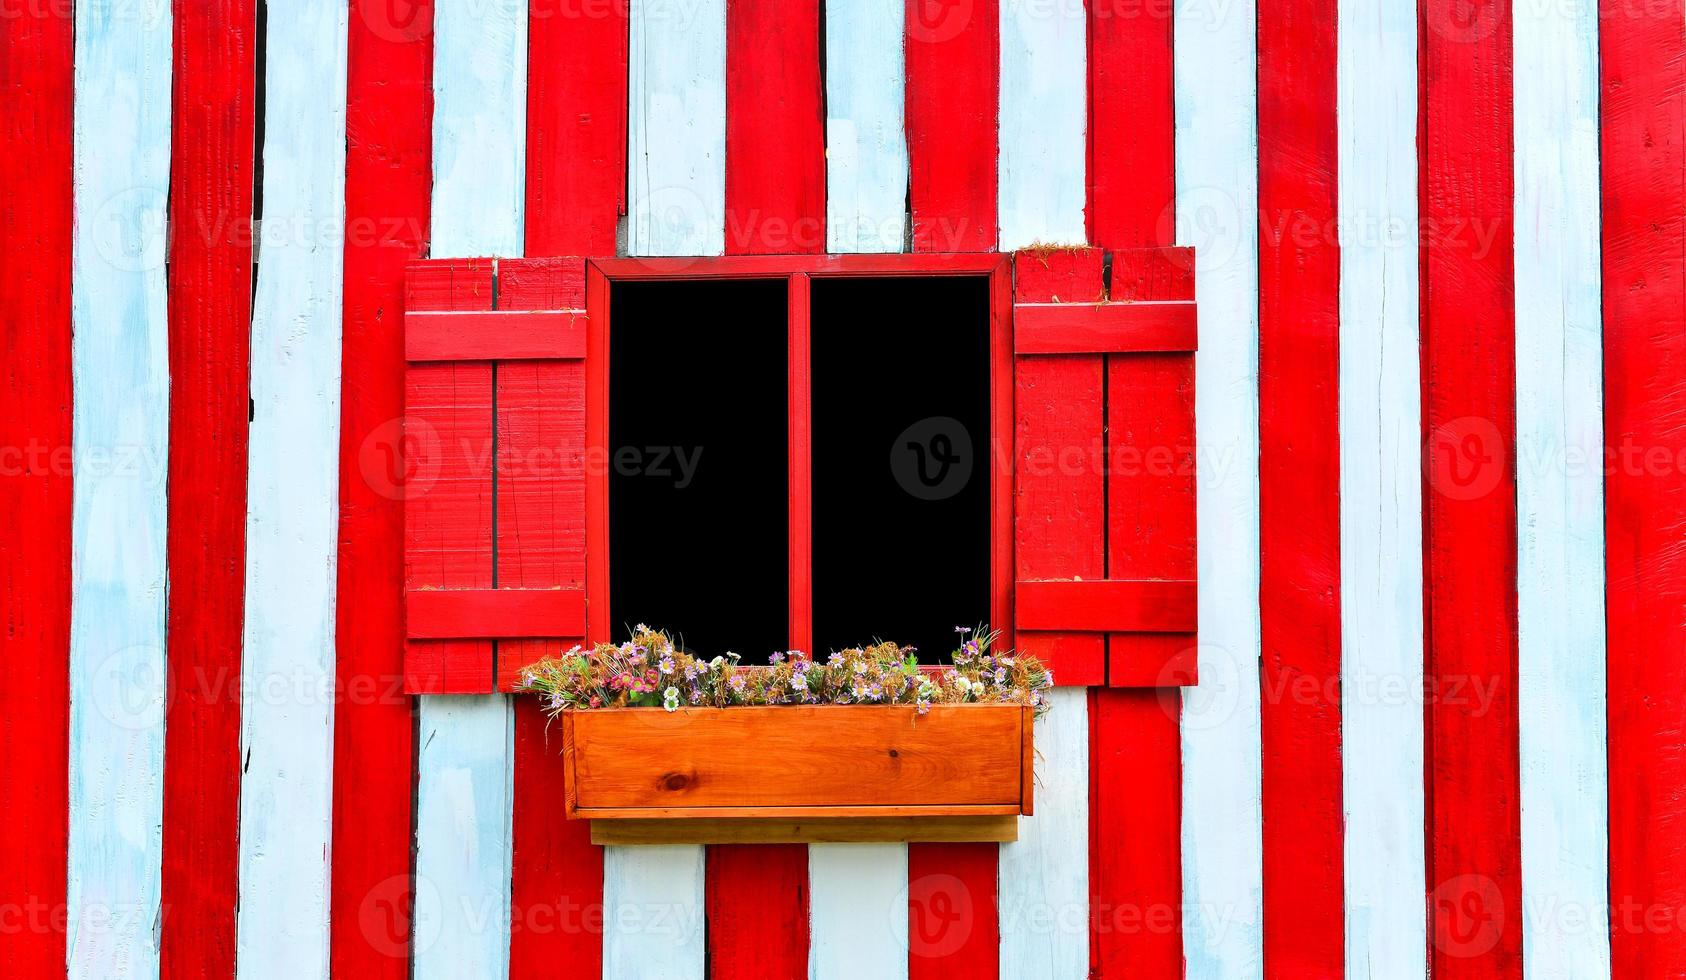 red window on red and white wooden wall photo